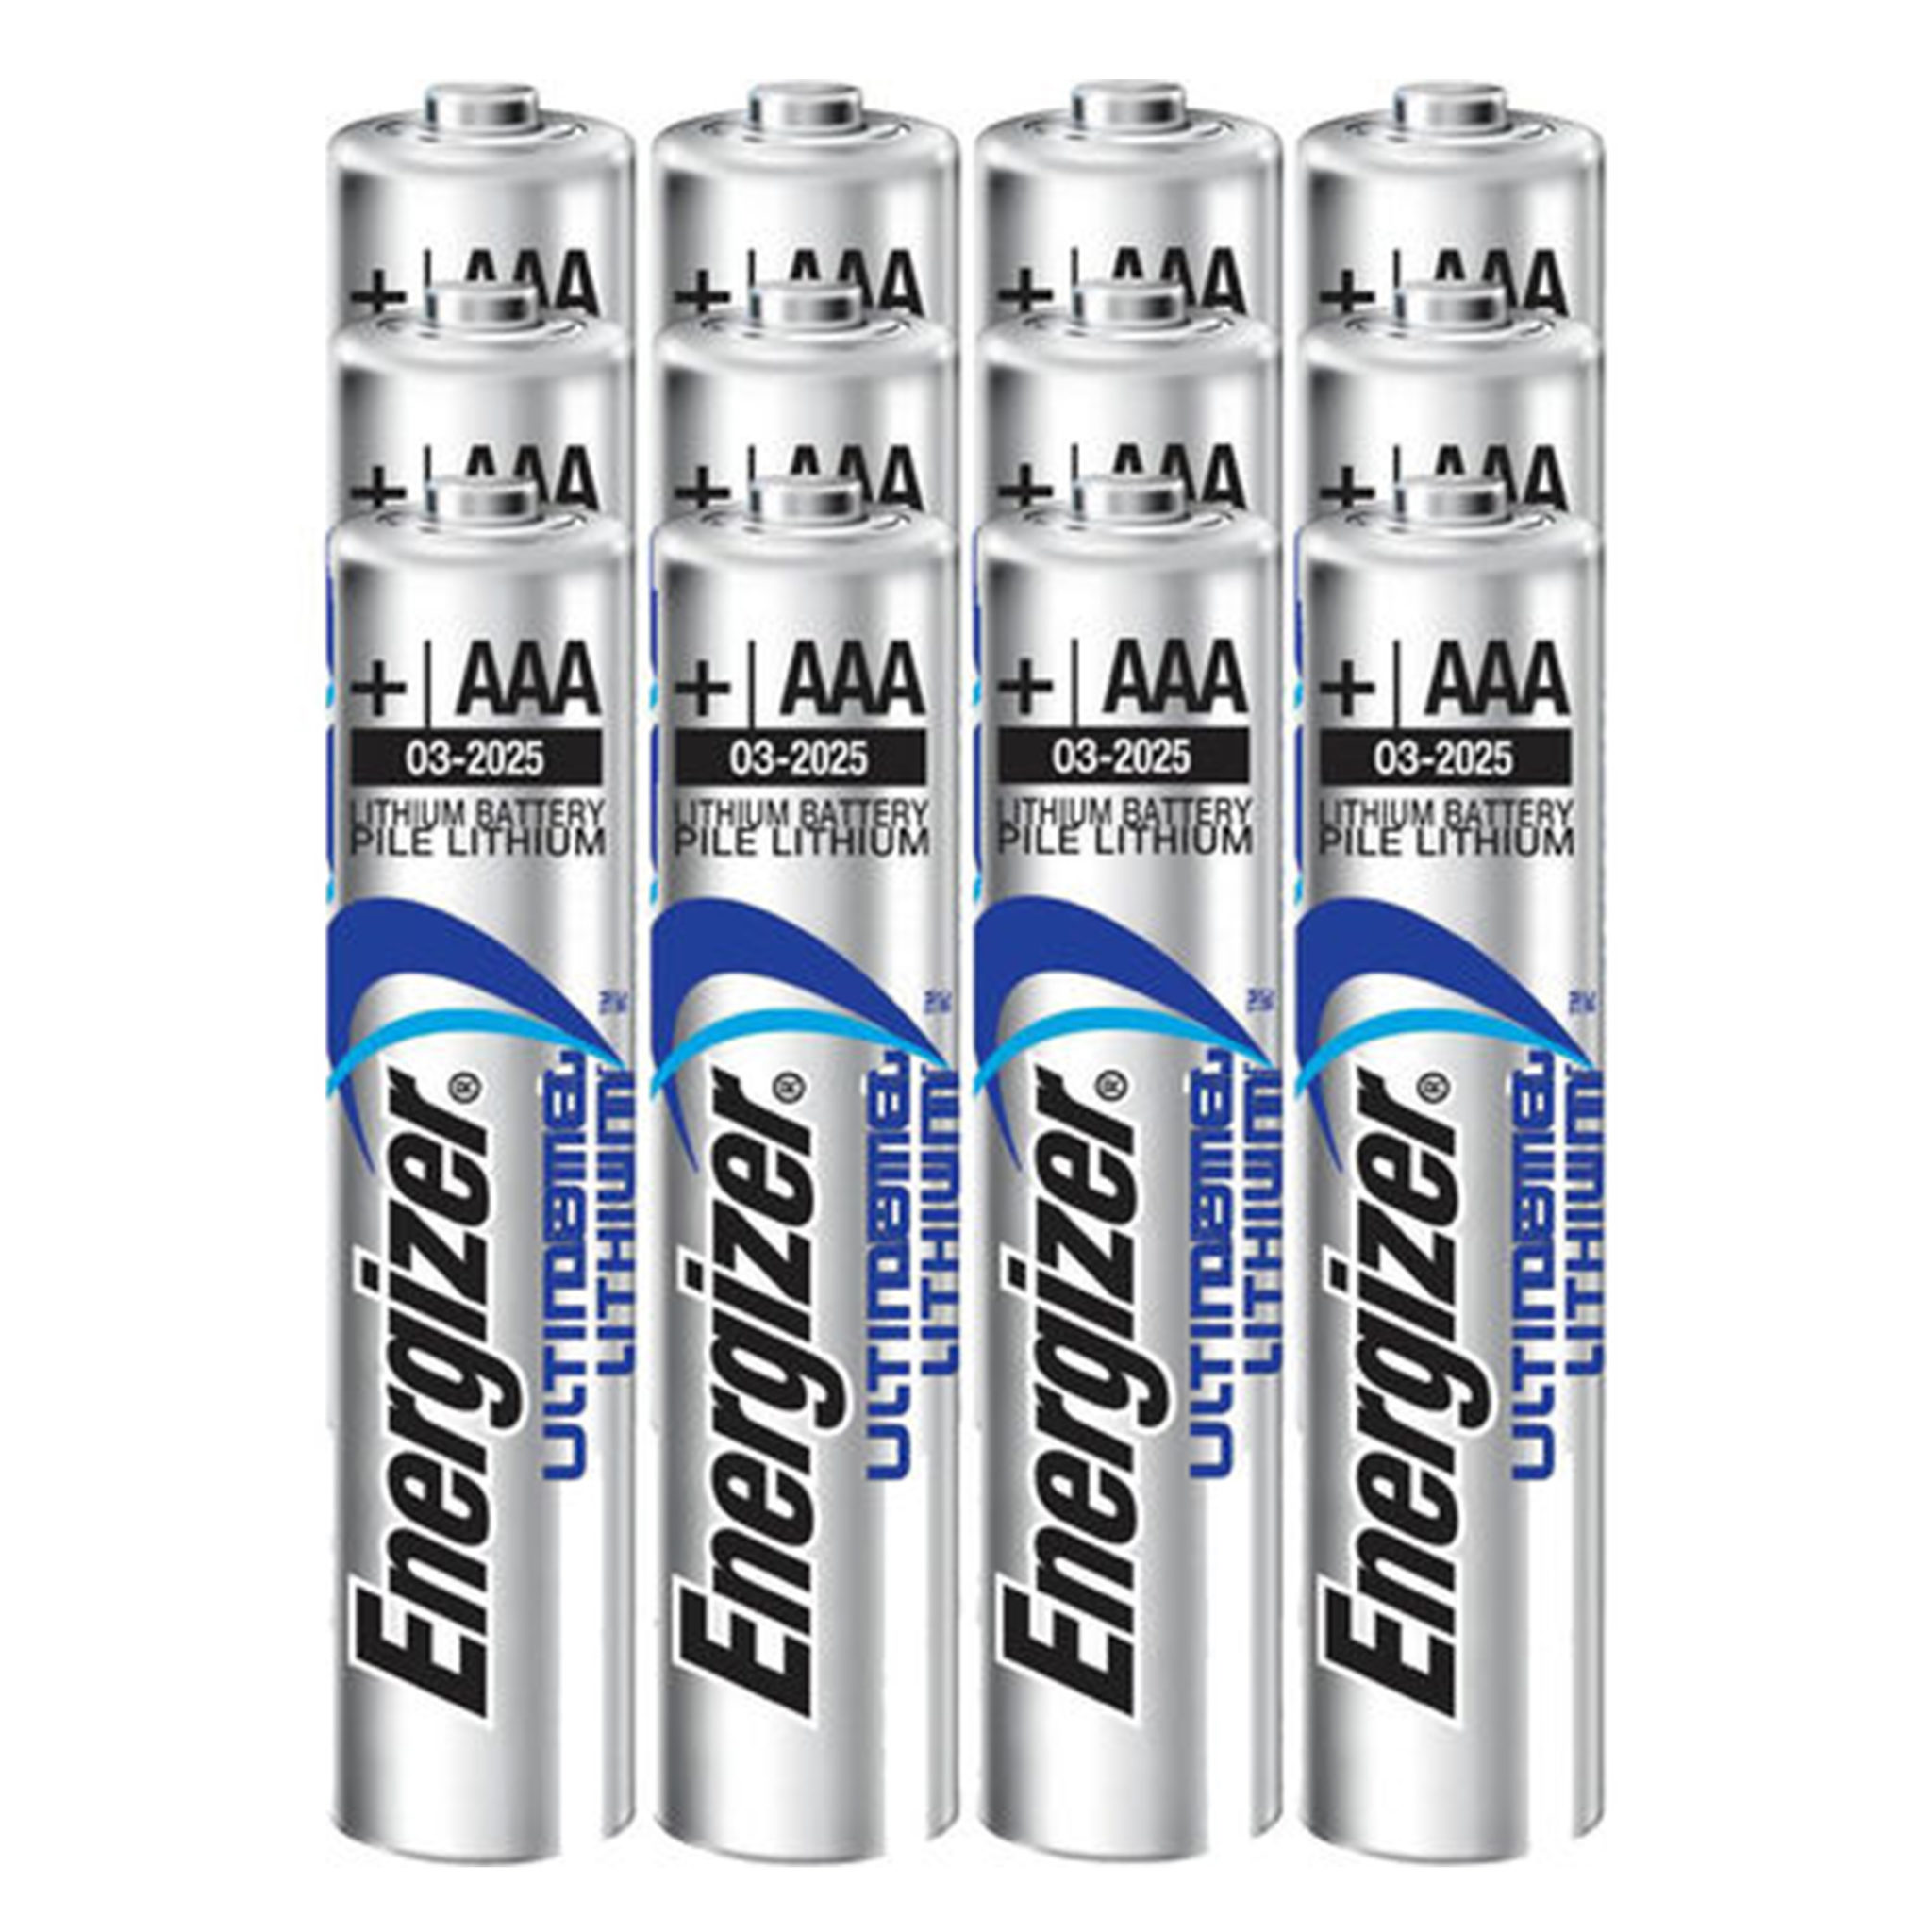 Aaa Baterien 12 Pack Of Aaa Energizer Ultimate Lithium Batteries For Use With The Alpha Stimaid